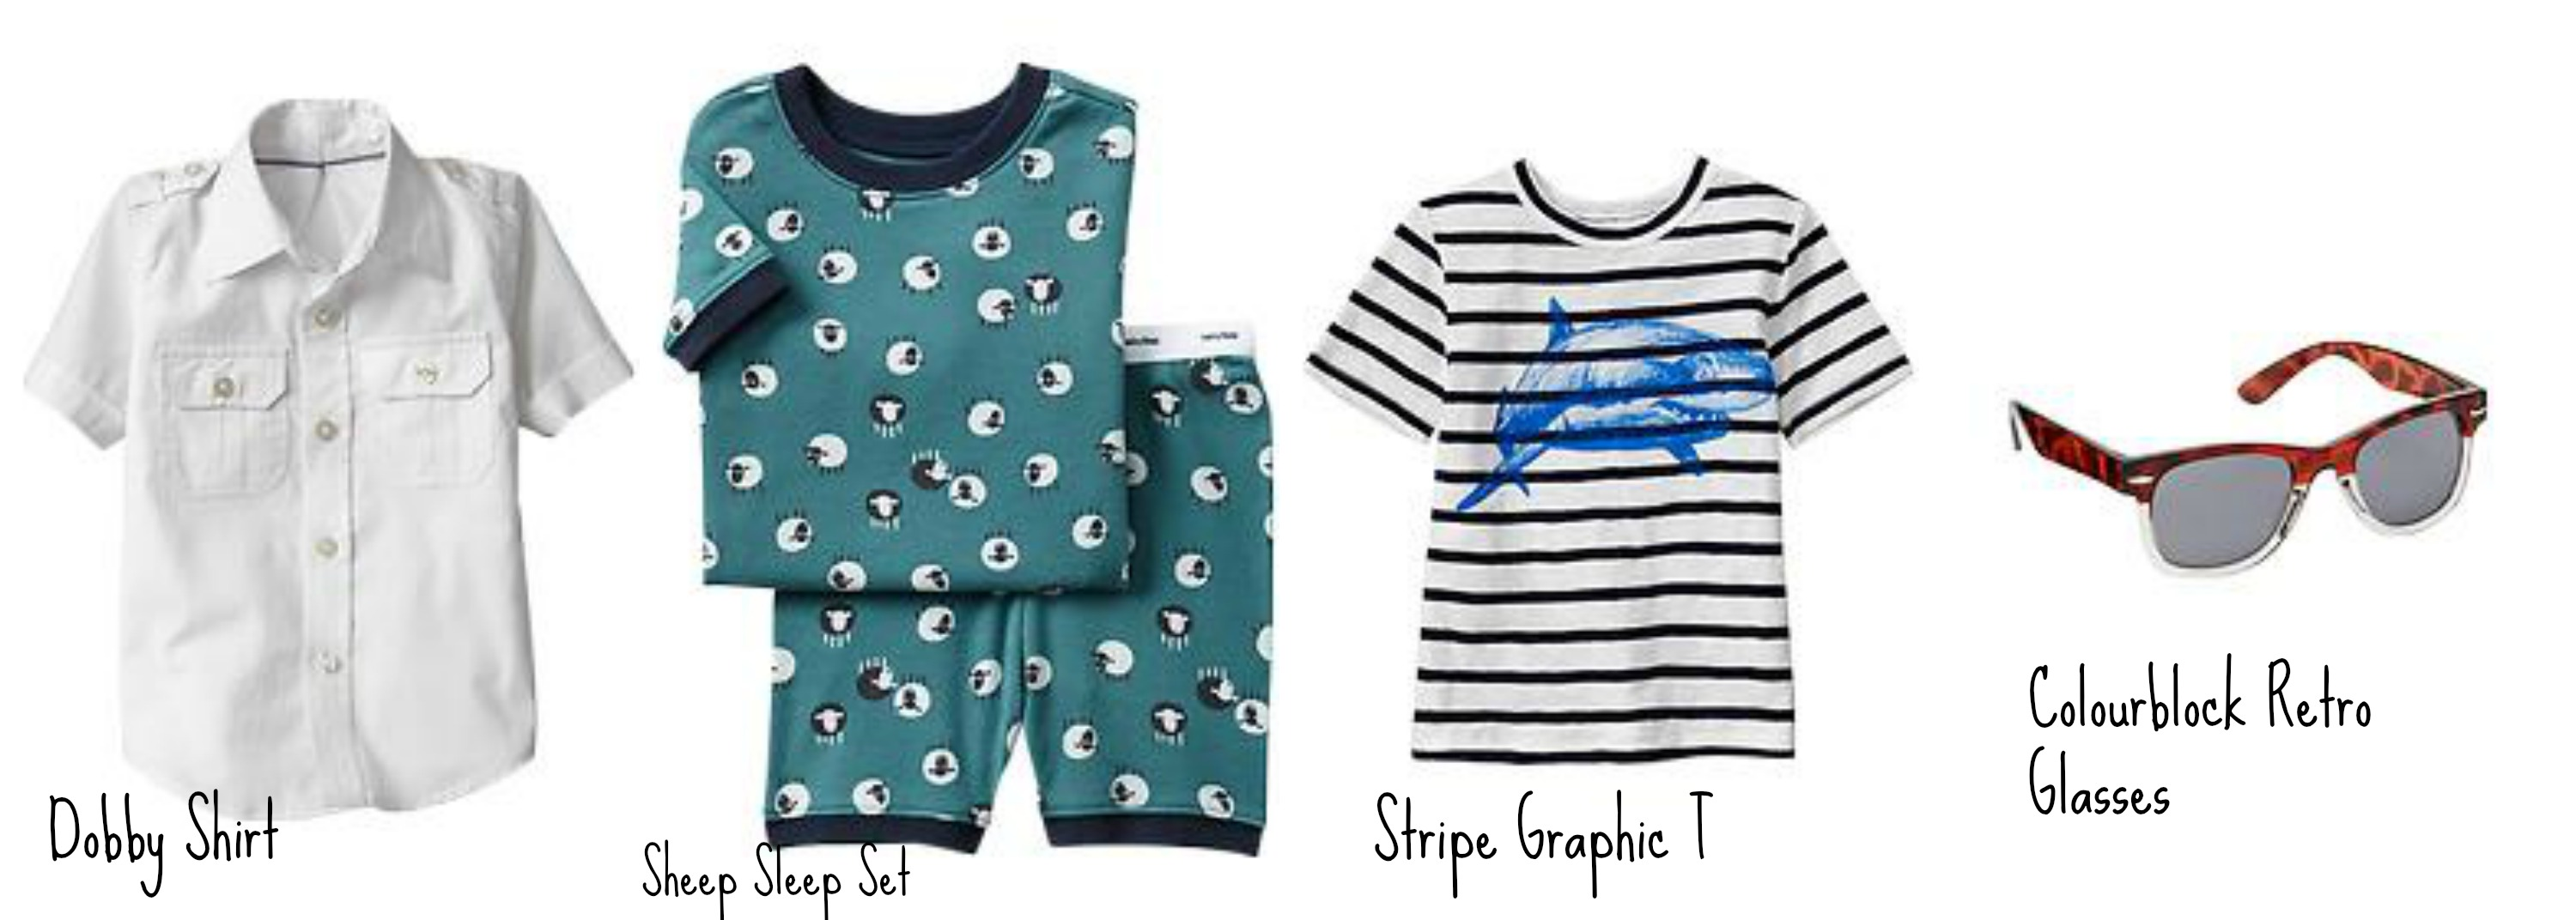 GAP Kids Toddler Boy Lookbook Spring 2014 The Spirited Puddle Jumper